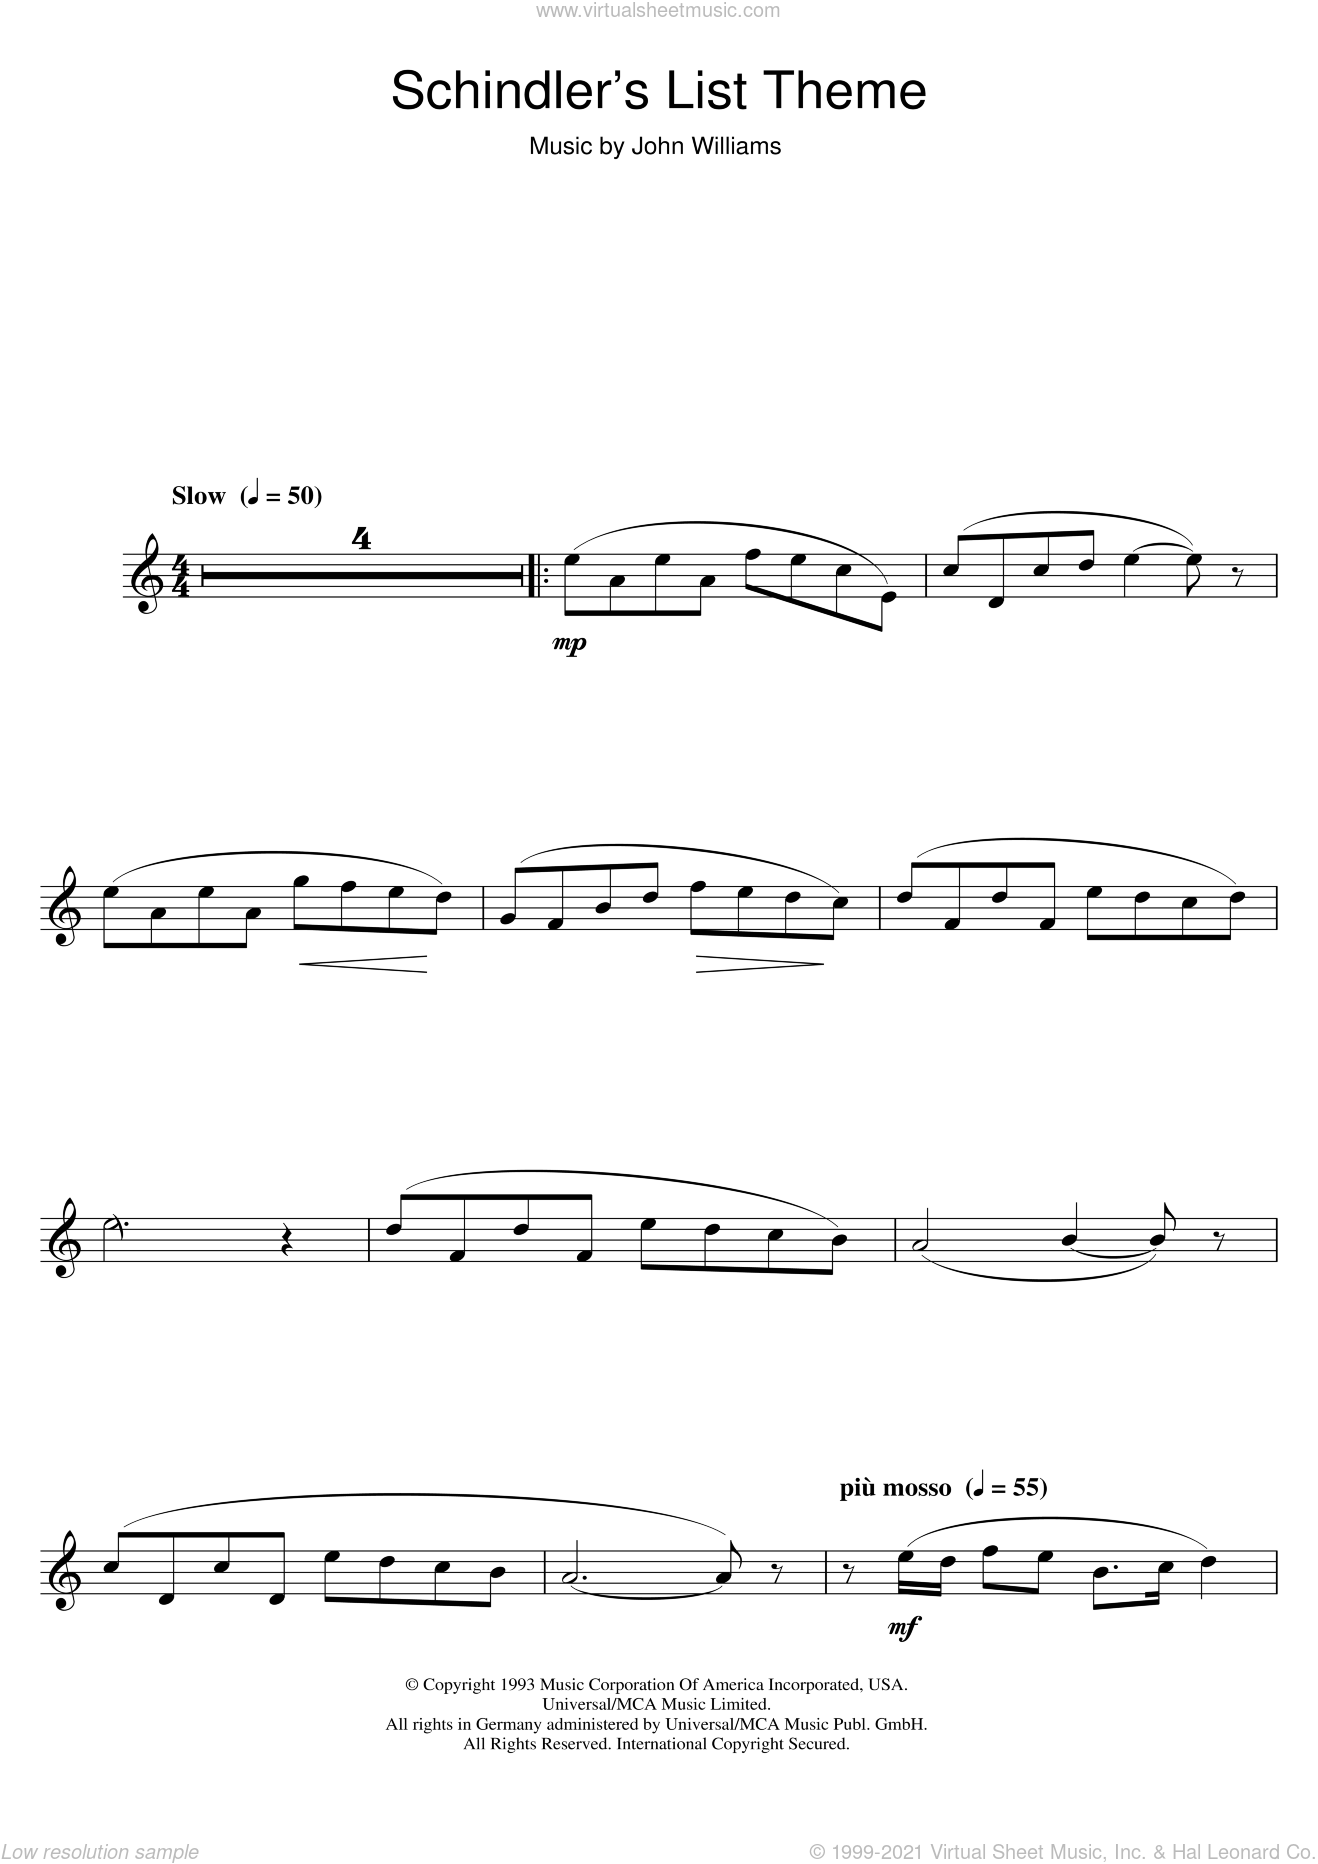 Theme From Schindler's List sheet music for alto saxophone solo by John Williams, intermediate skill level